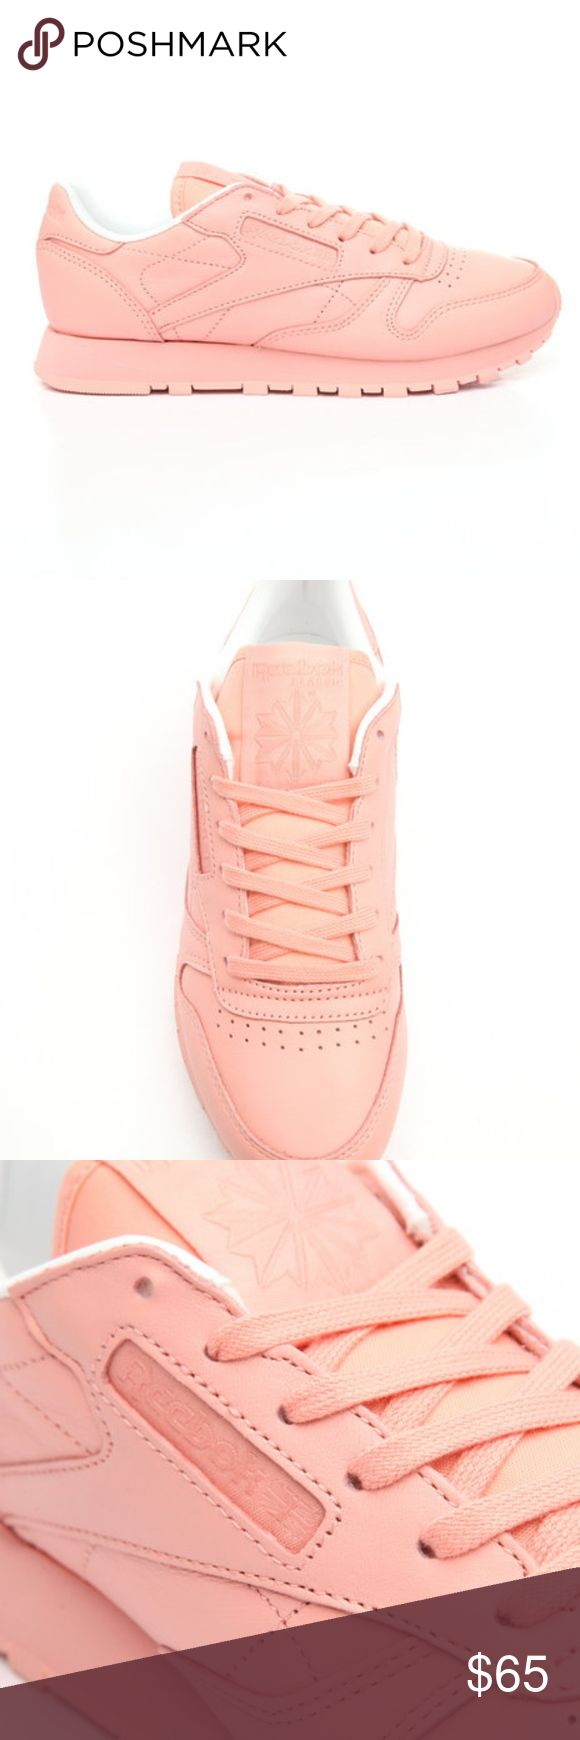 """New Reebok Classics Pastel Pink Sneakers New   Reebok Classics """"Pink' Pastel sneakers in limited women's sizes. Reebok Shoes Sneakers"""